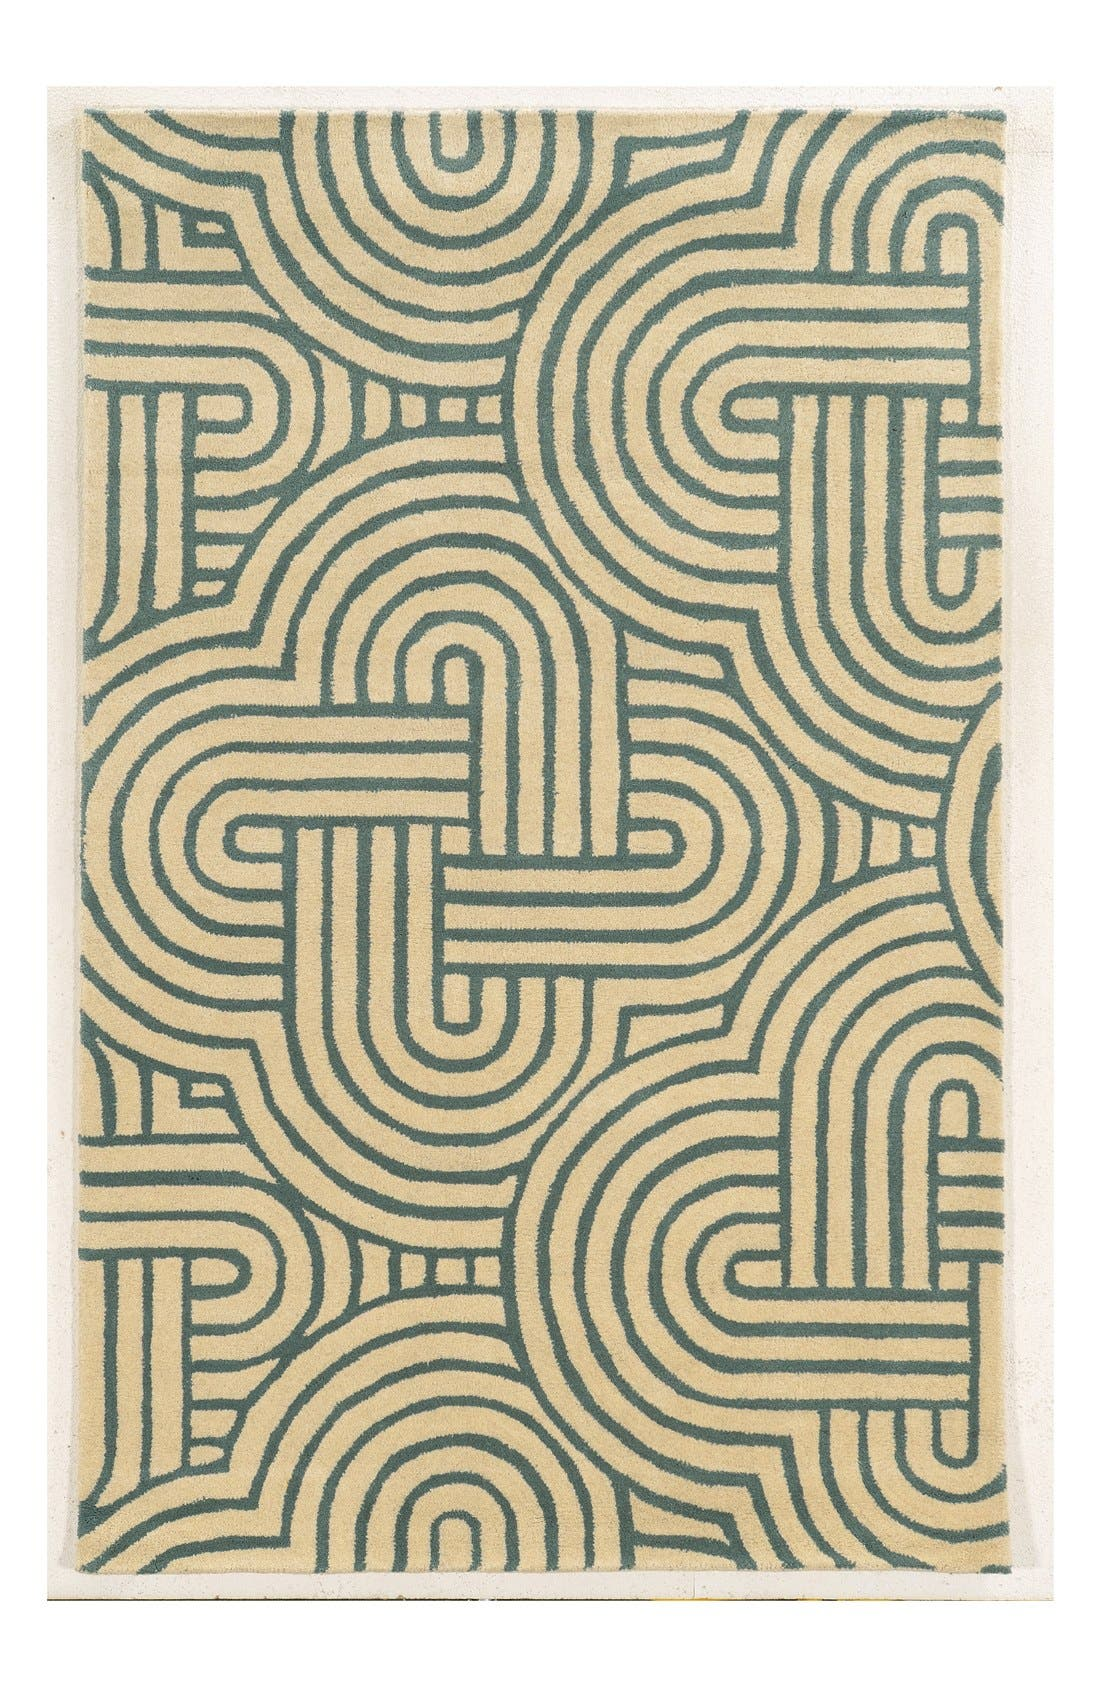 Alternate Image 1 Selected - Rizzy Home 'Julian Pointe' Hand Tufted Wool Area Rug